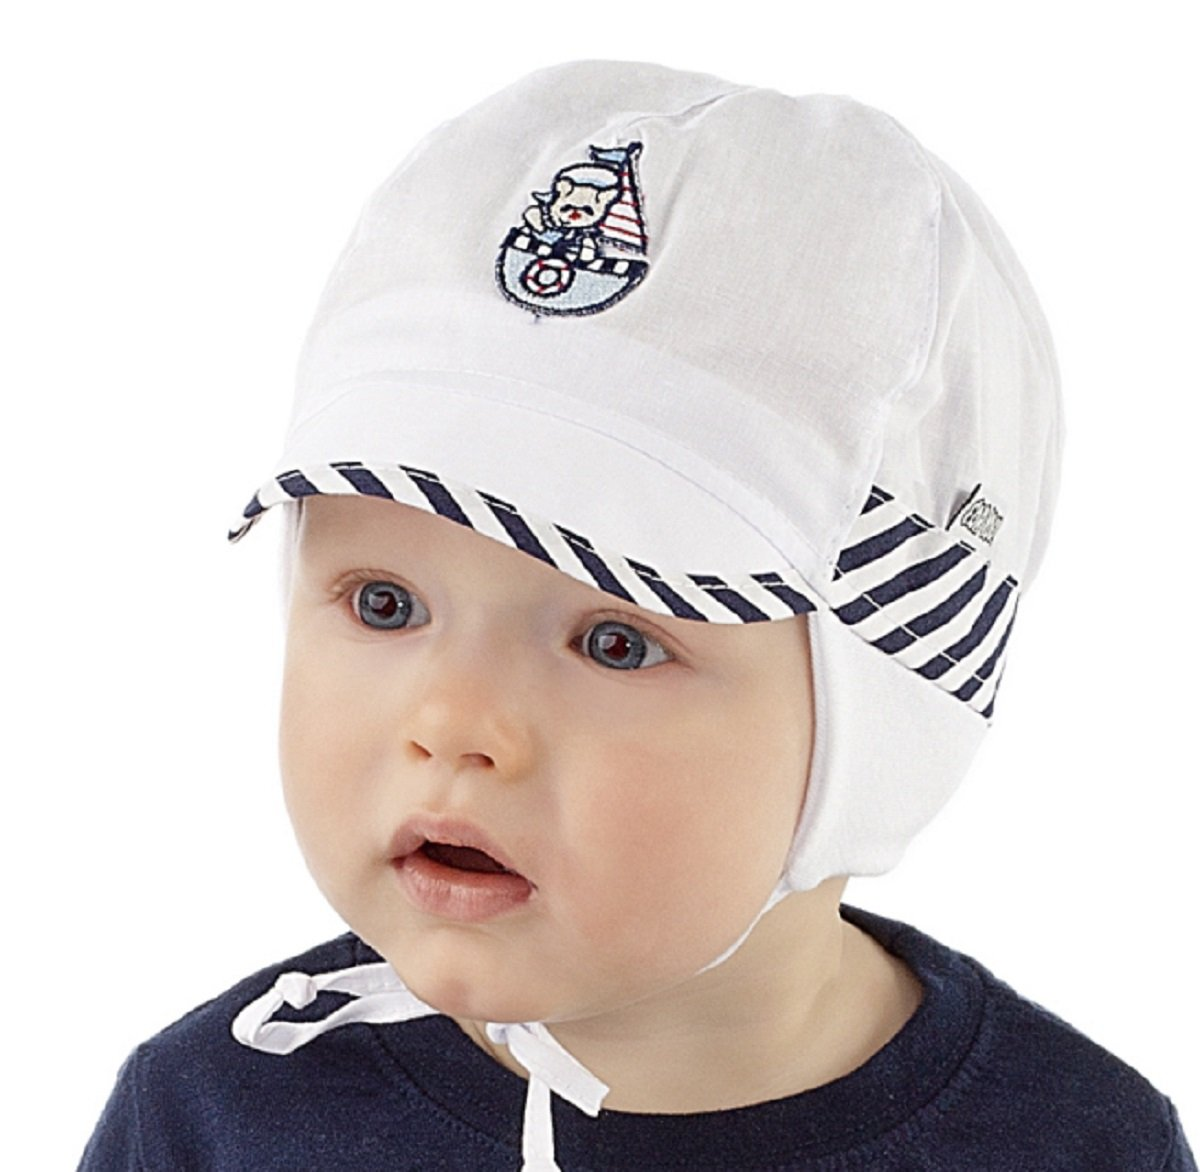 Boys Sun Hat Holiday Beach Summer Hat 0 2 3 6 9 12 months NEW Marine Collection Baby Boy (40cm 3-6 mths)